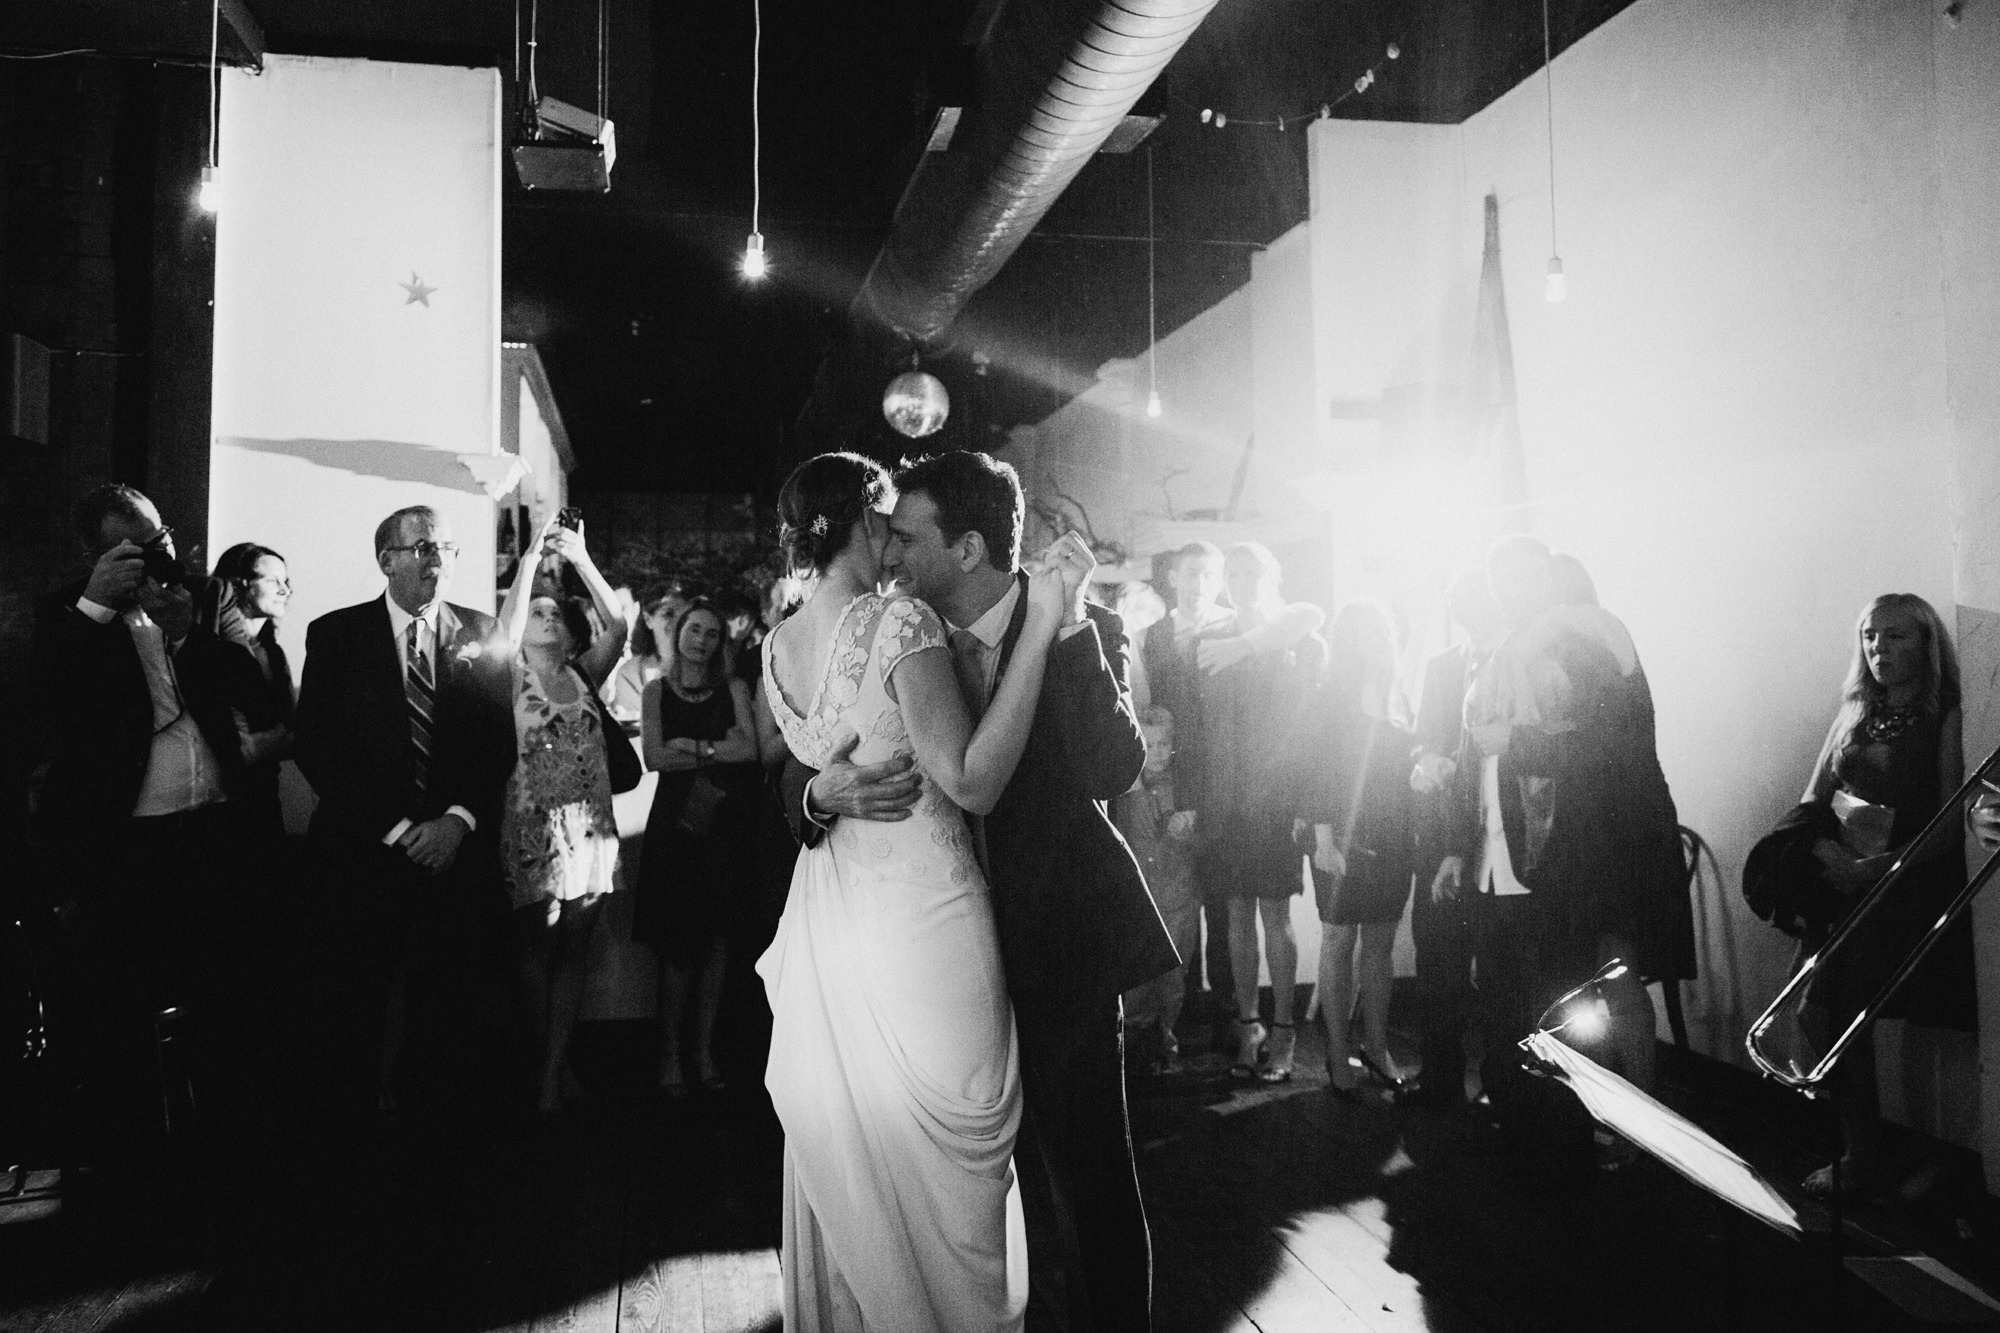 brooklyn_wedding_flatbushfarm_sammblake_053.jpg